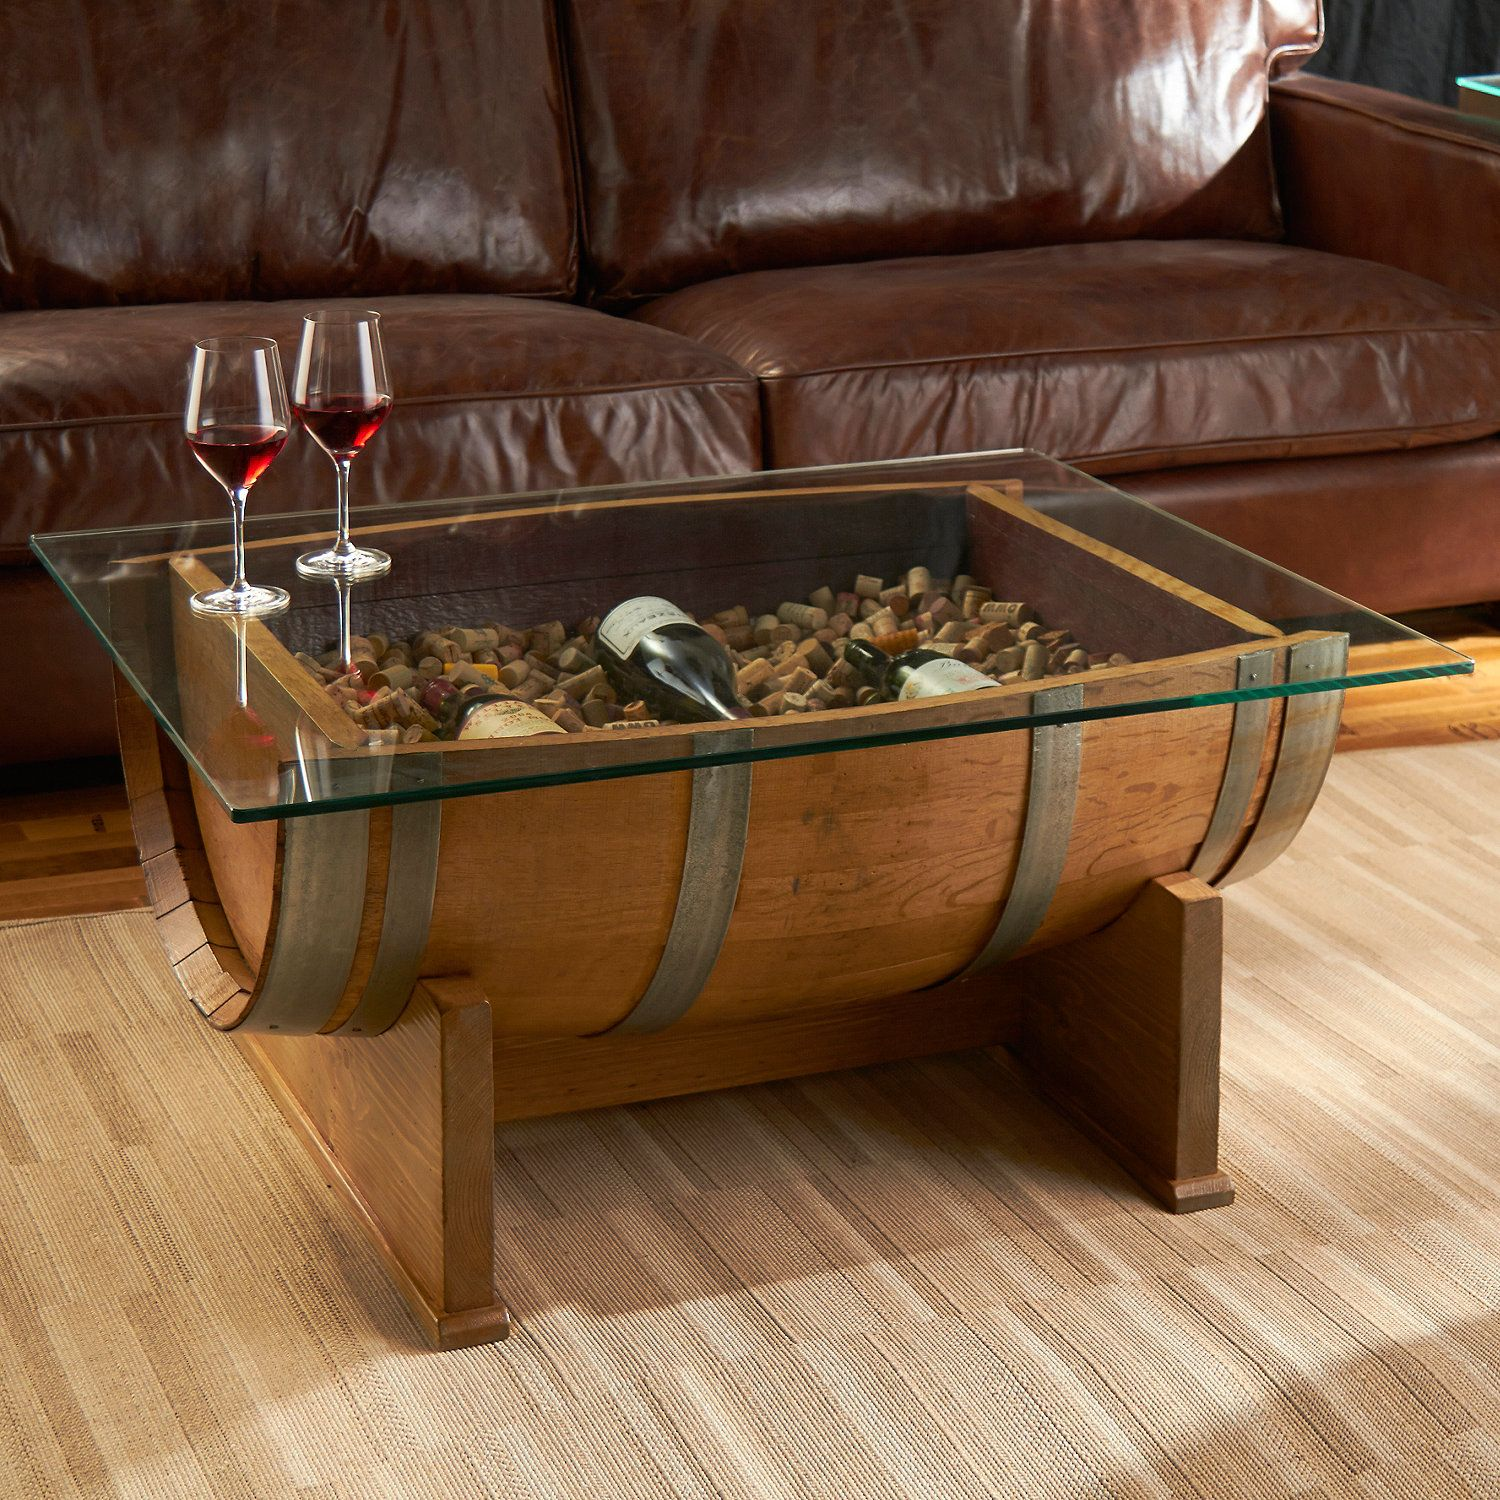 Wine Barrel Furniture Gorgeous DIY Wine Barrel Coffee Table with